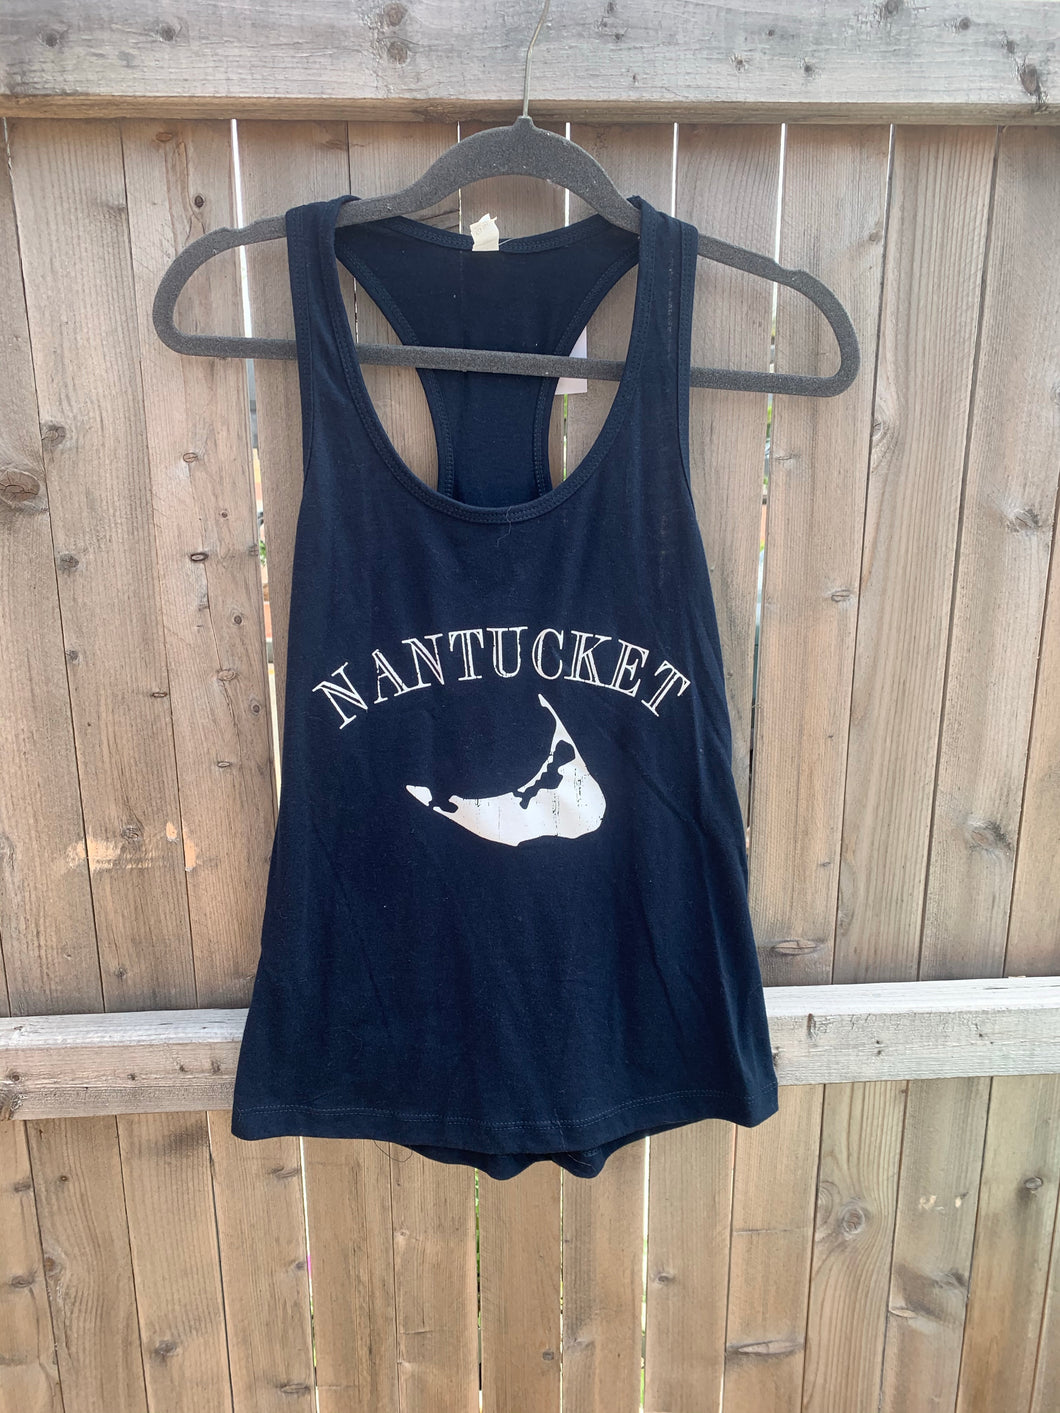 Nantucket Navy Tank